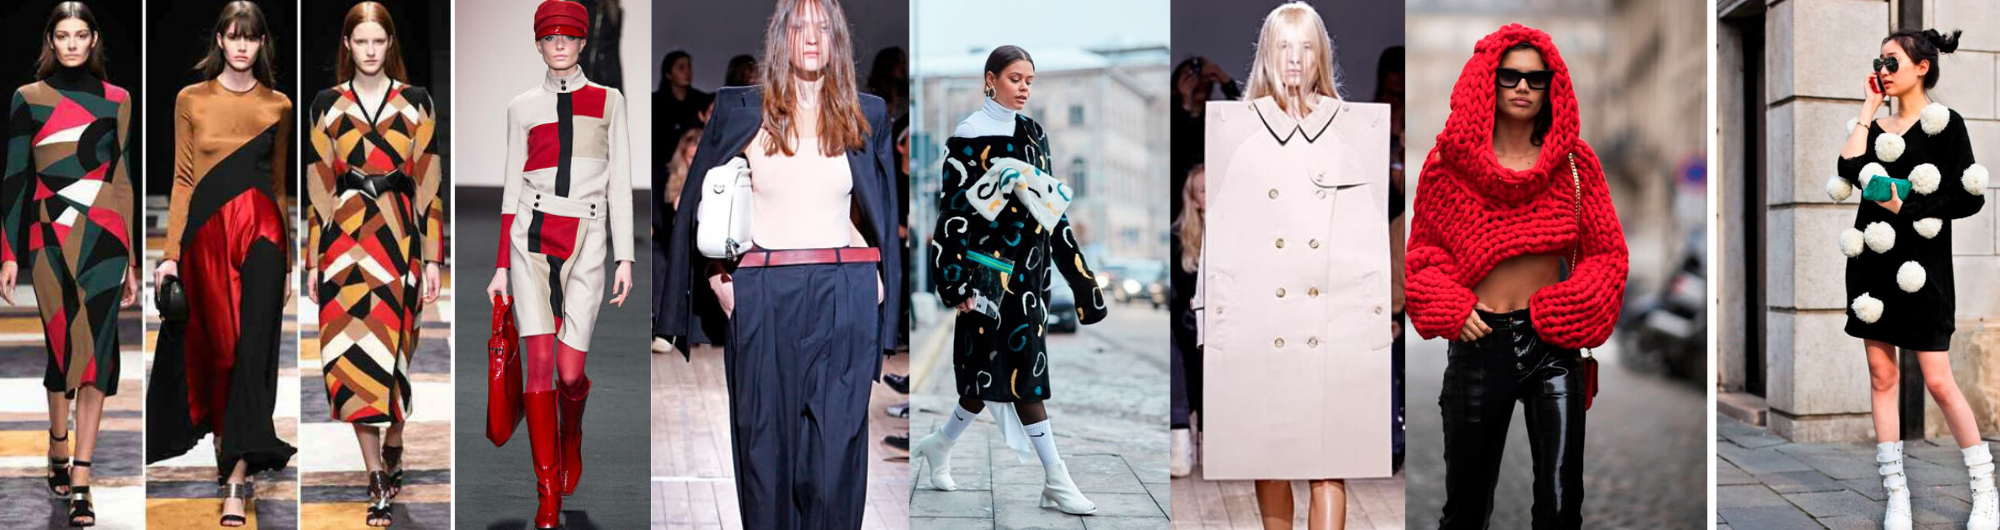 Avant garde style - How to dress for a party?